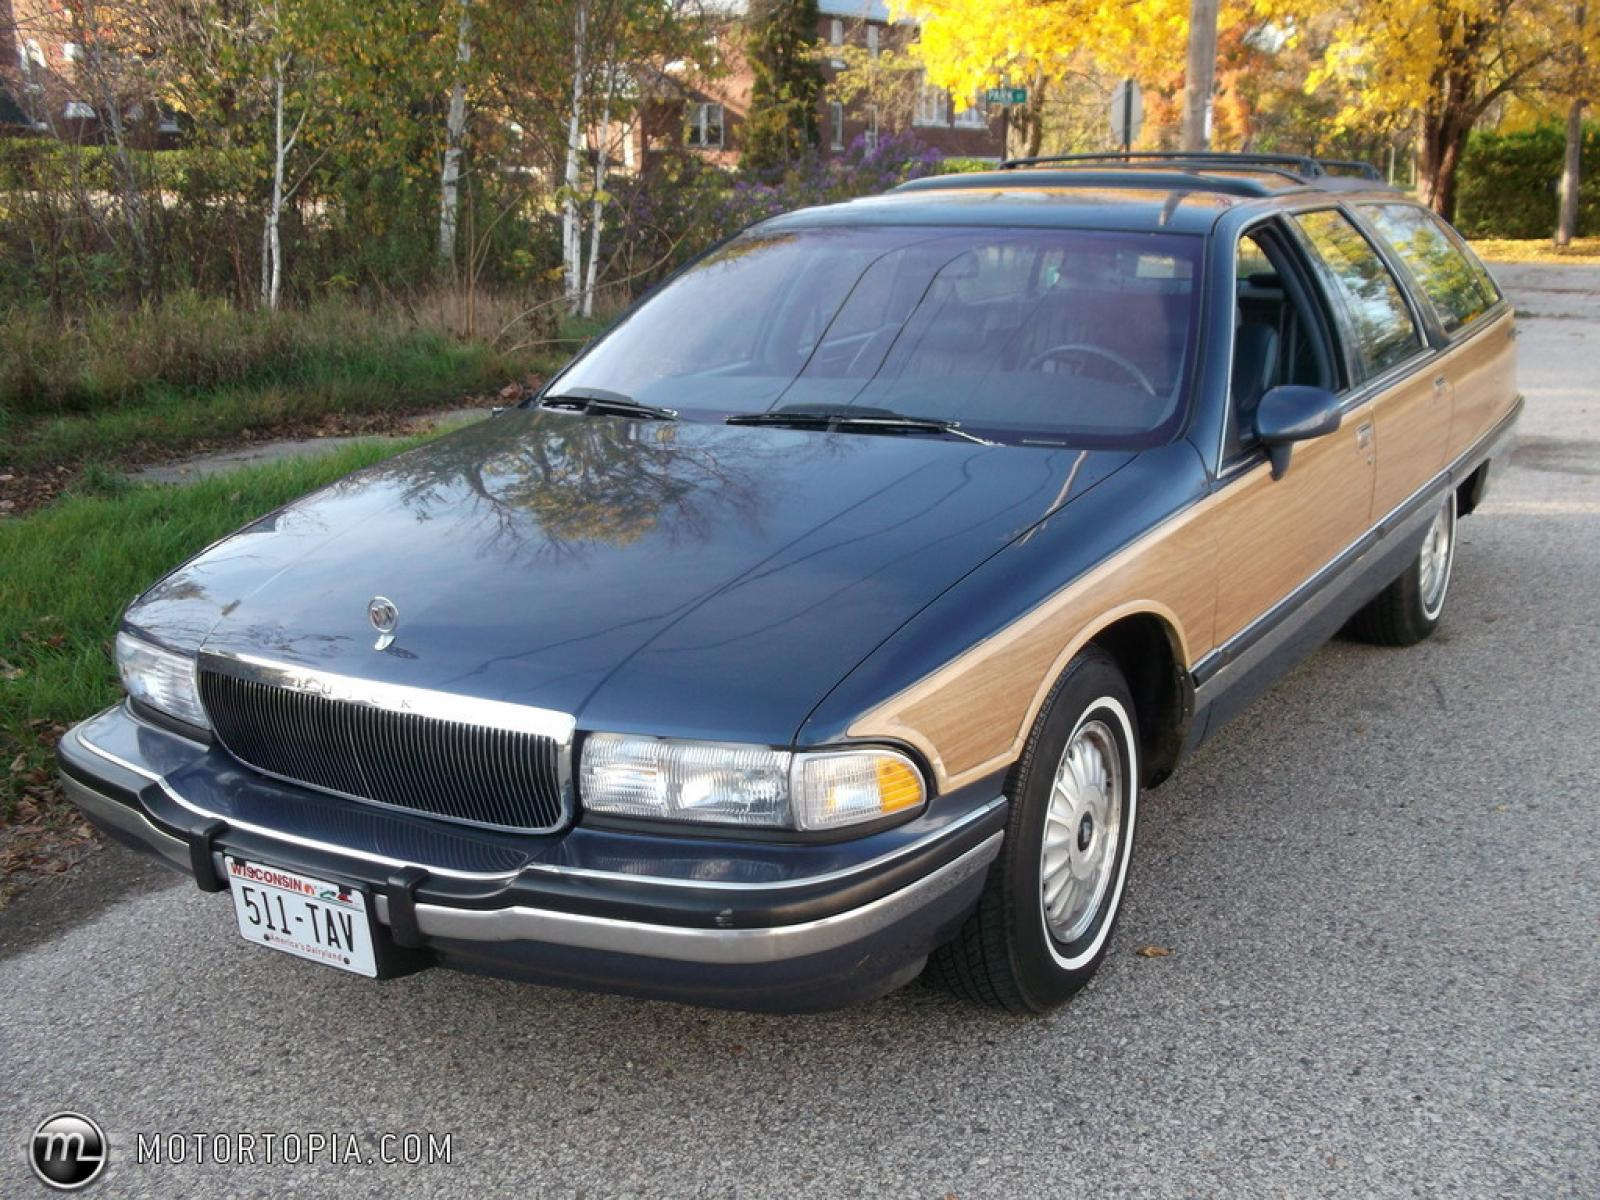 1994 Buick Roadmaster Information And Photos Zombiedrive 94 96 Wagon 800 1024 1280 1600 Origin